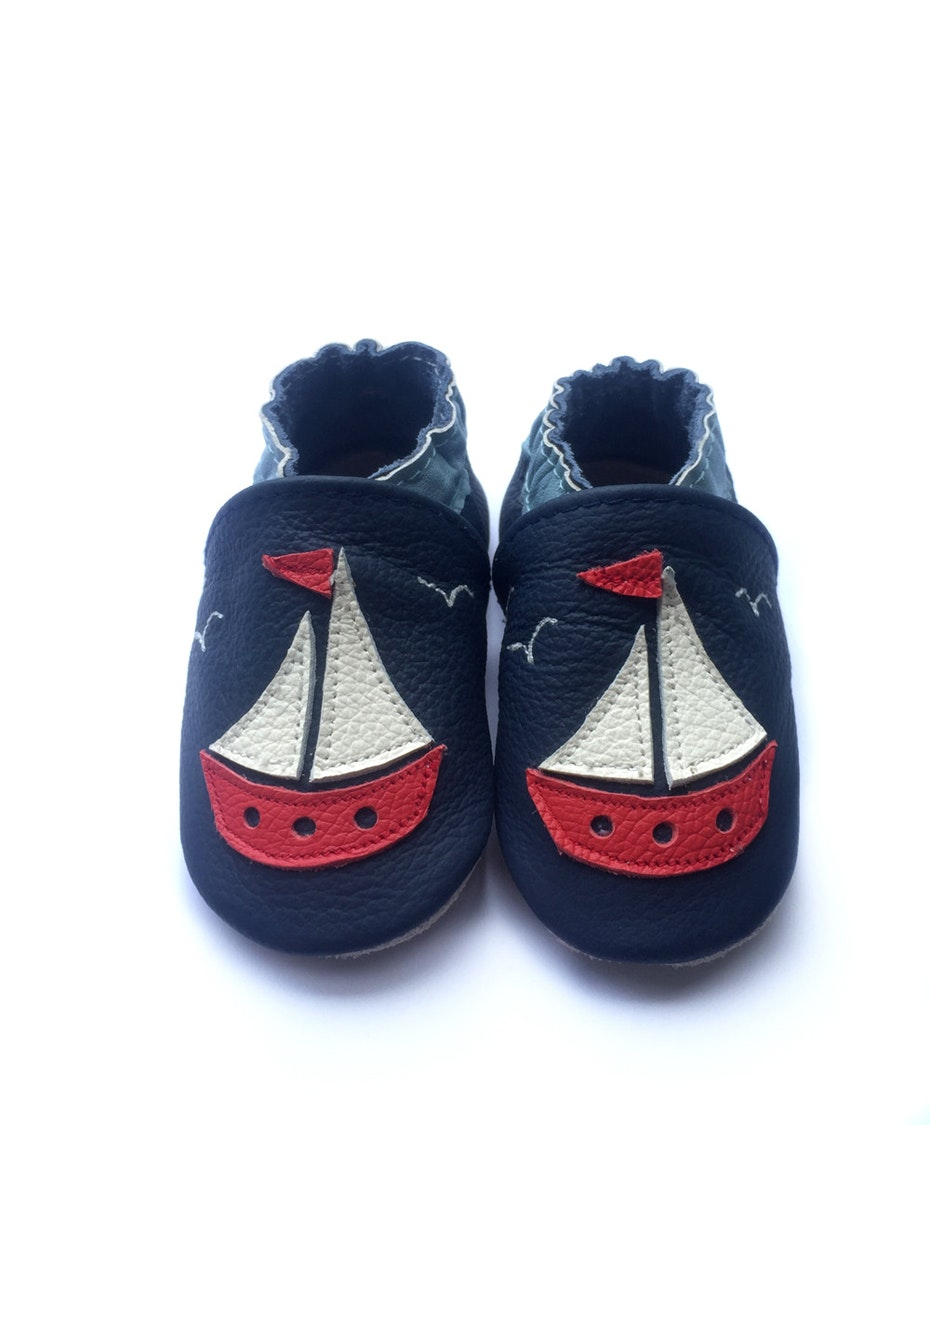 Baby  Leather Shoes - Navy / Sea Boat